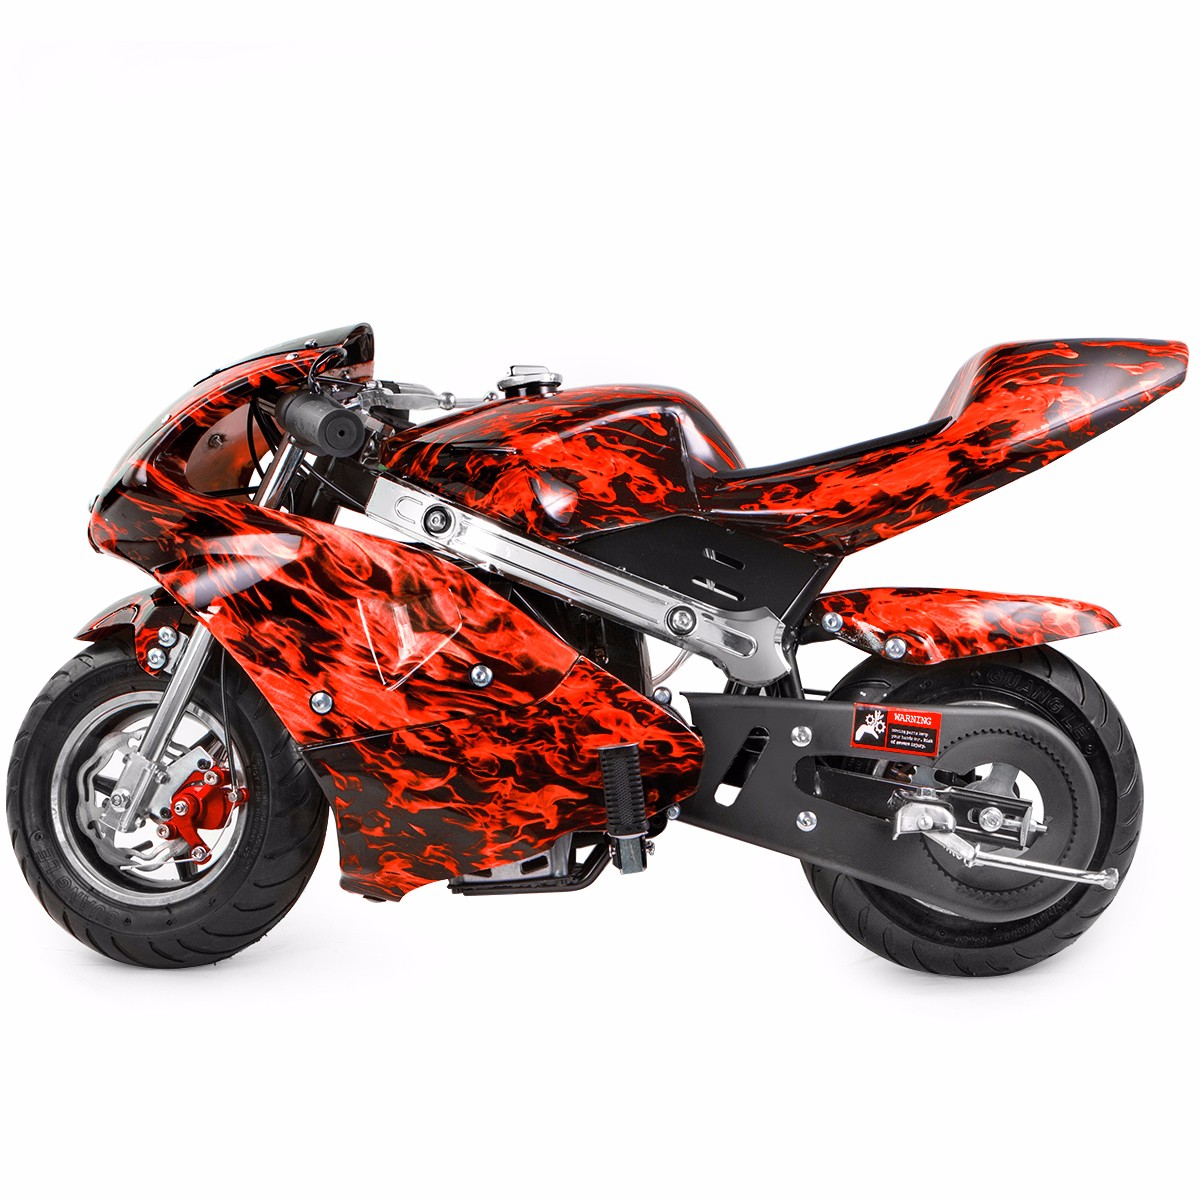 XtremepowerUS Gas Pocket Bike Motorcycle 40cc 4 Stroke Engine, Red Frame